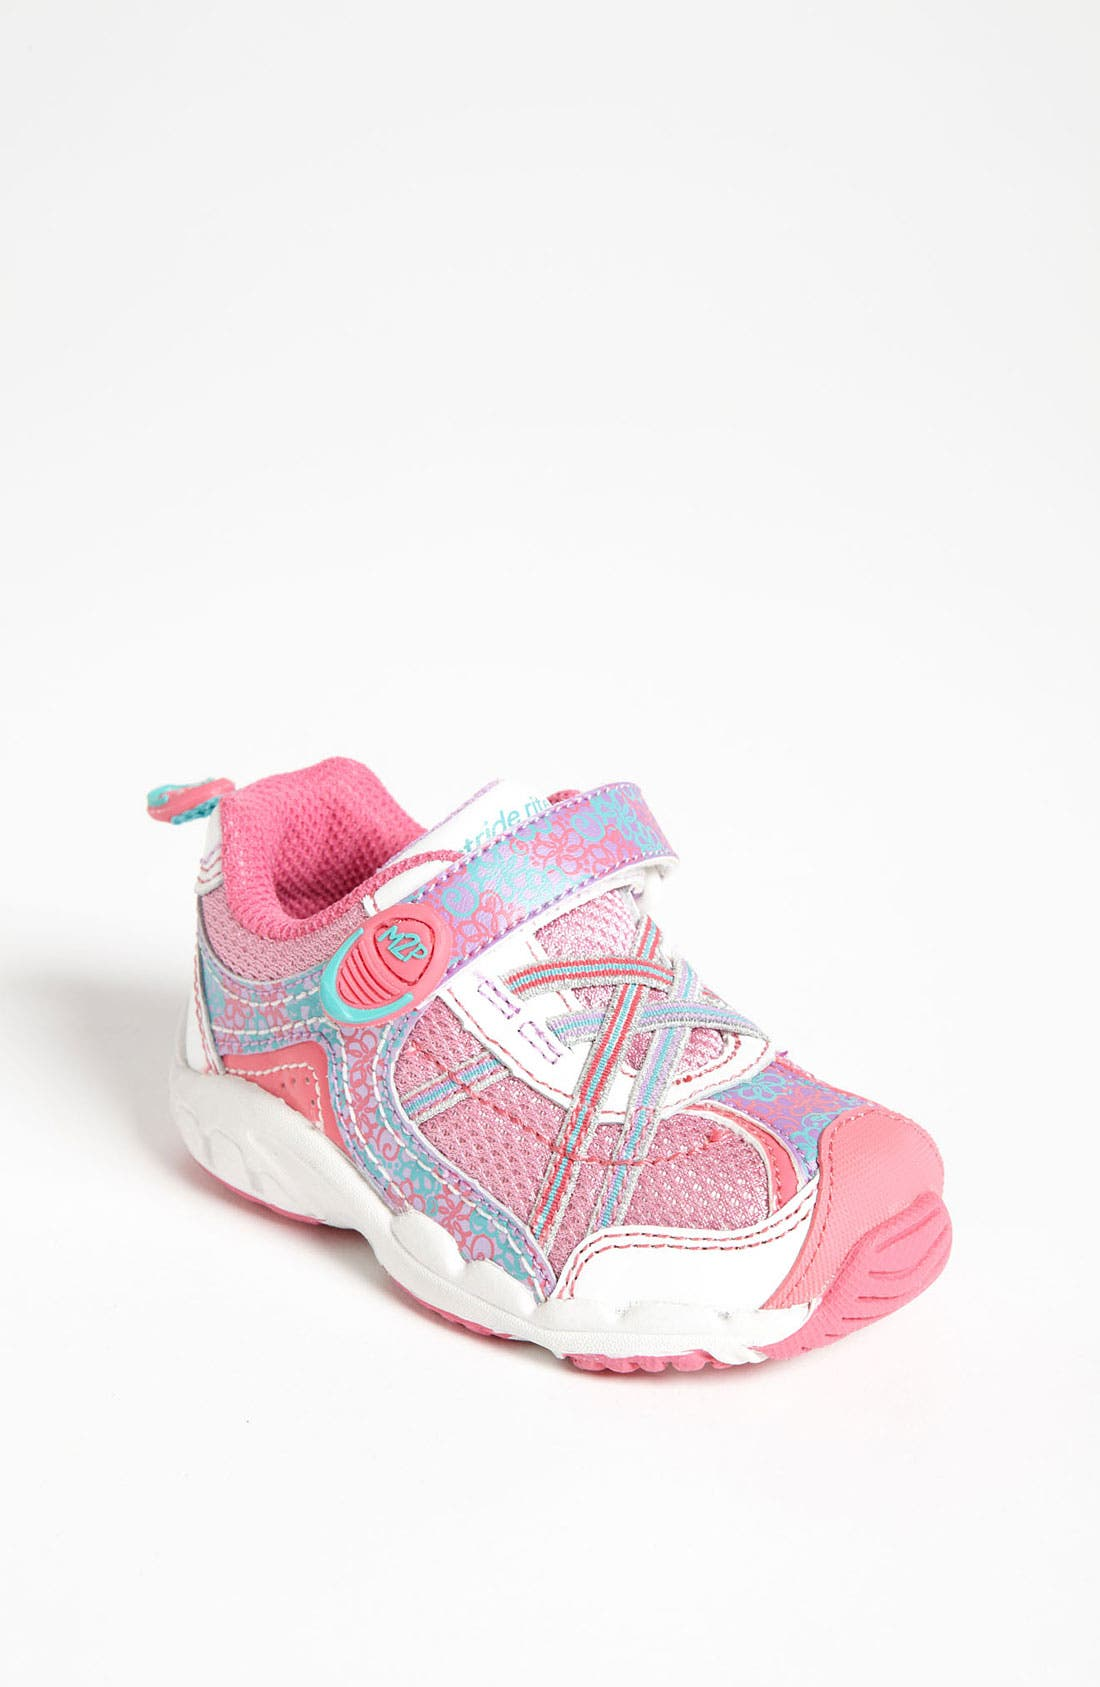 Alternate Image 1 Selected - Stride Rite 'Kathryn' Sneaker (Toddler)